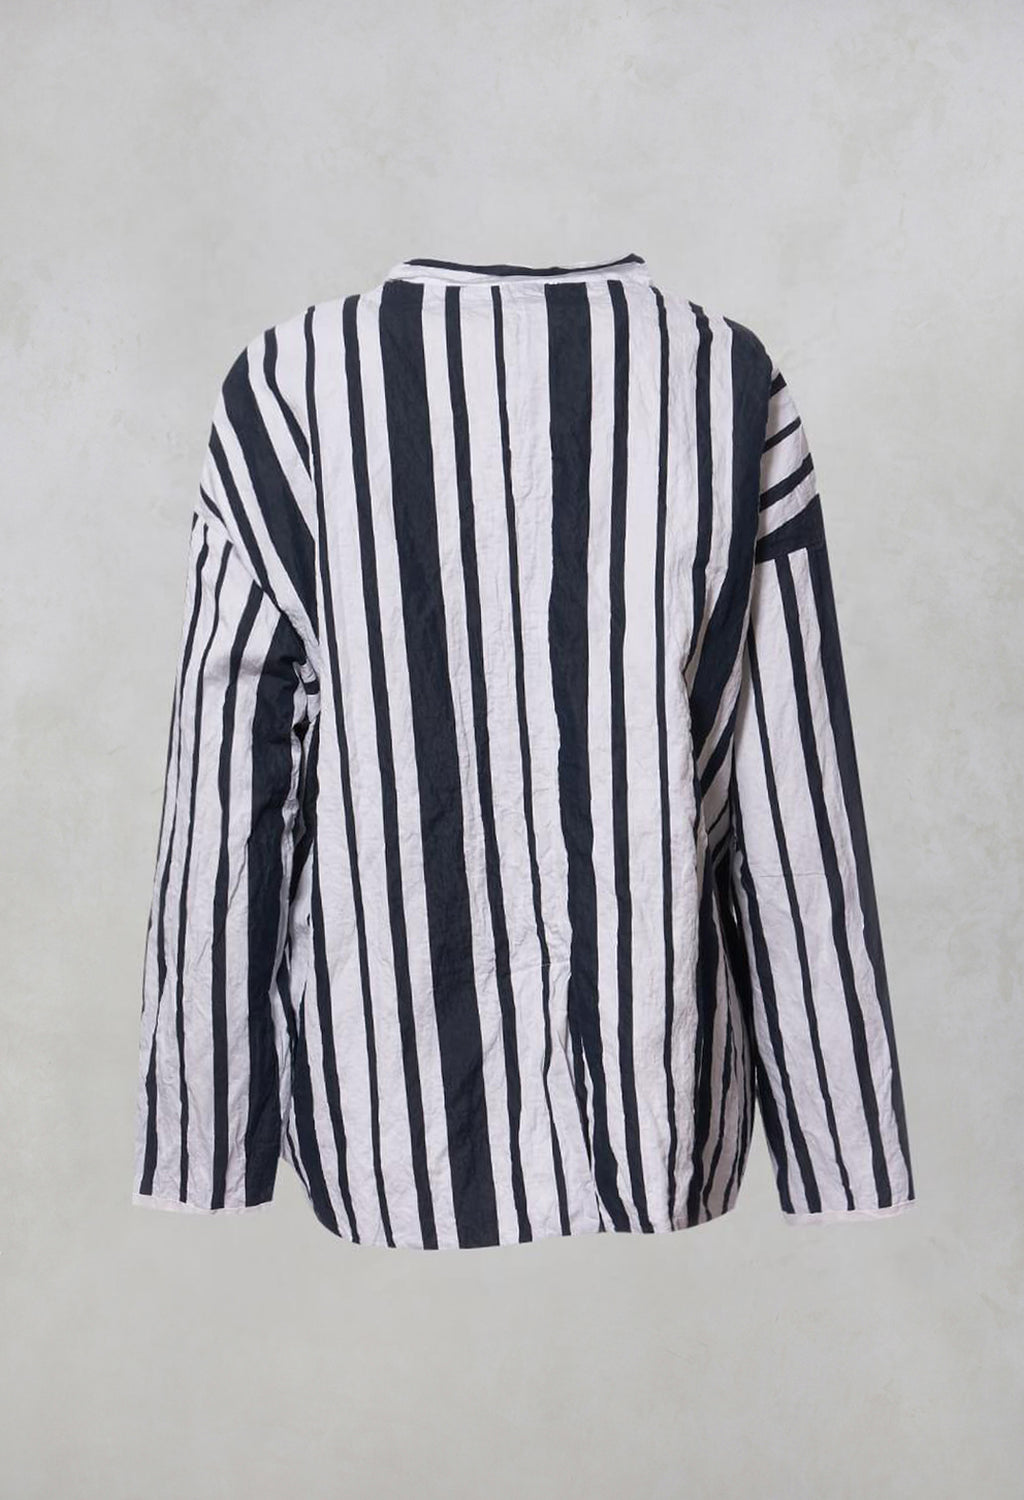 Striped Buttoned Style - Casual Jacket with Grandad Collar in White